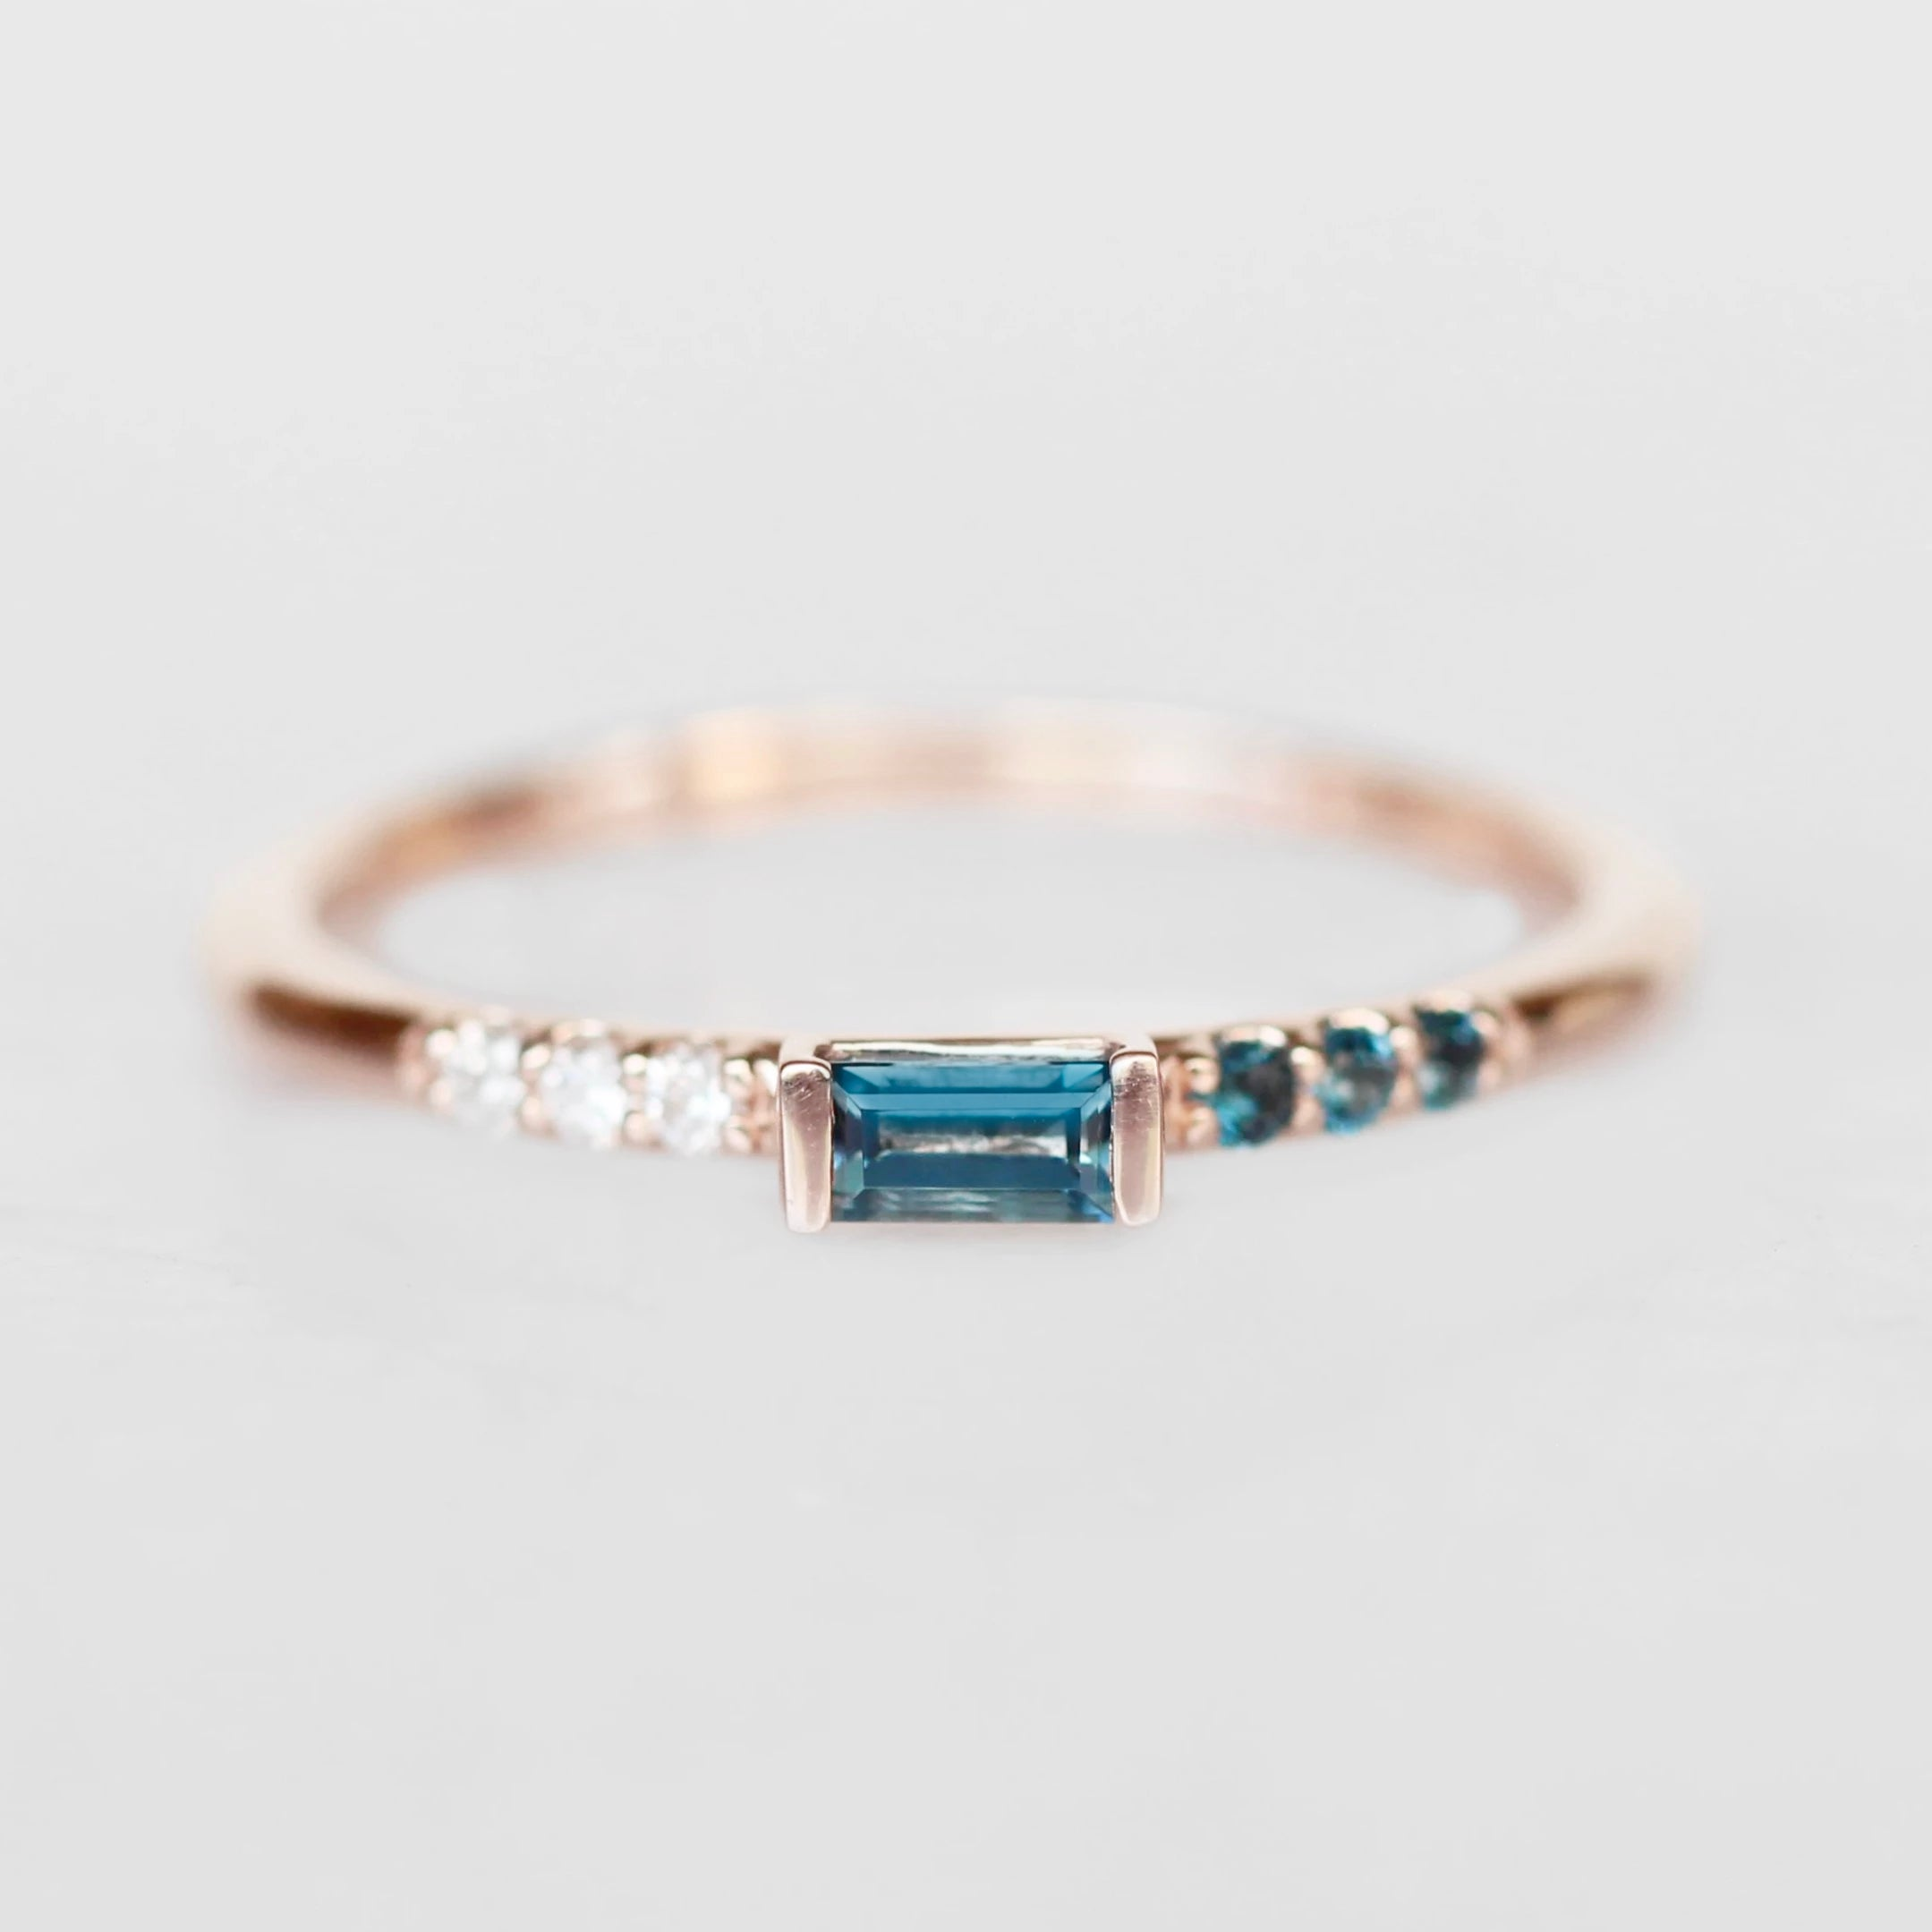 Summer Stacking Ring with London Blue Topaz and White Diamonds in 10k Rose Gold - Ready to Size and Ship - Celestial Diamonds ® by Midwinter Co.